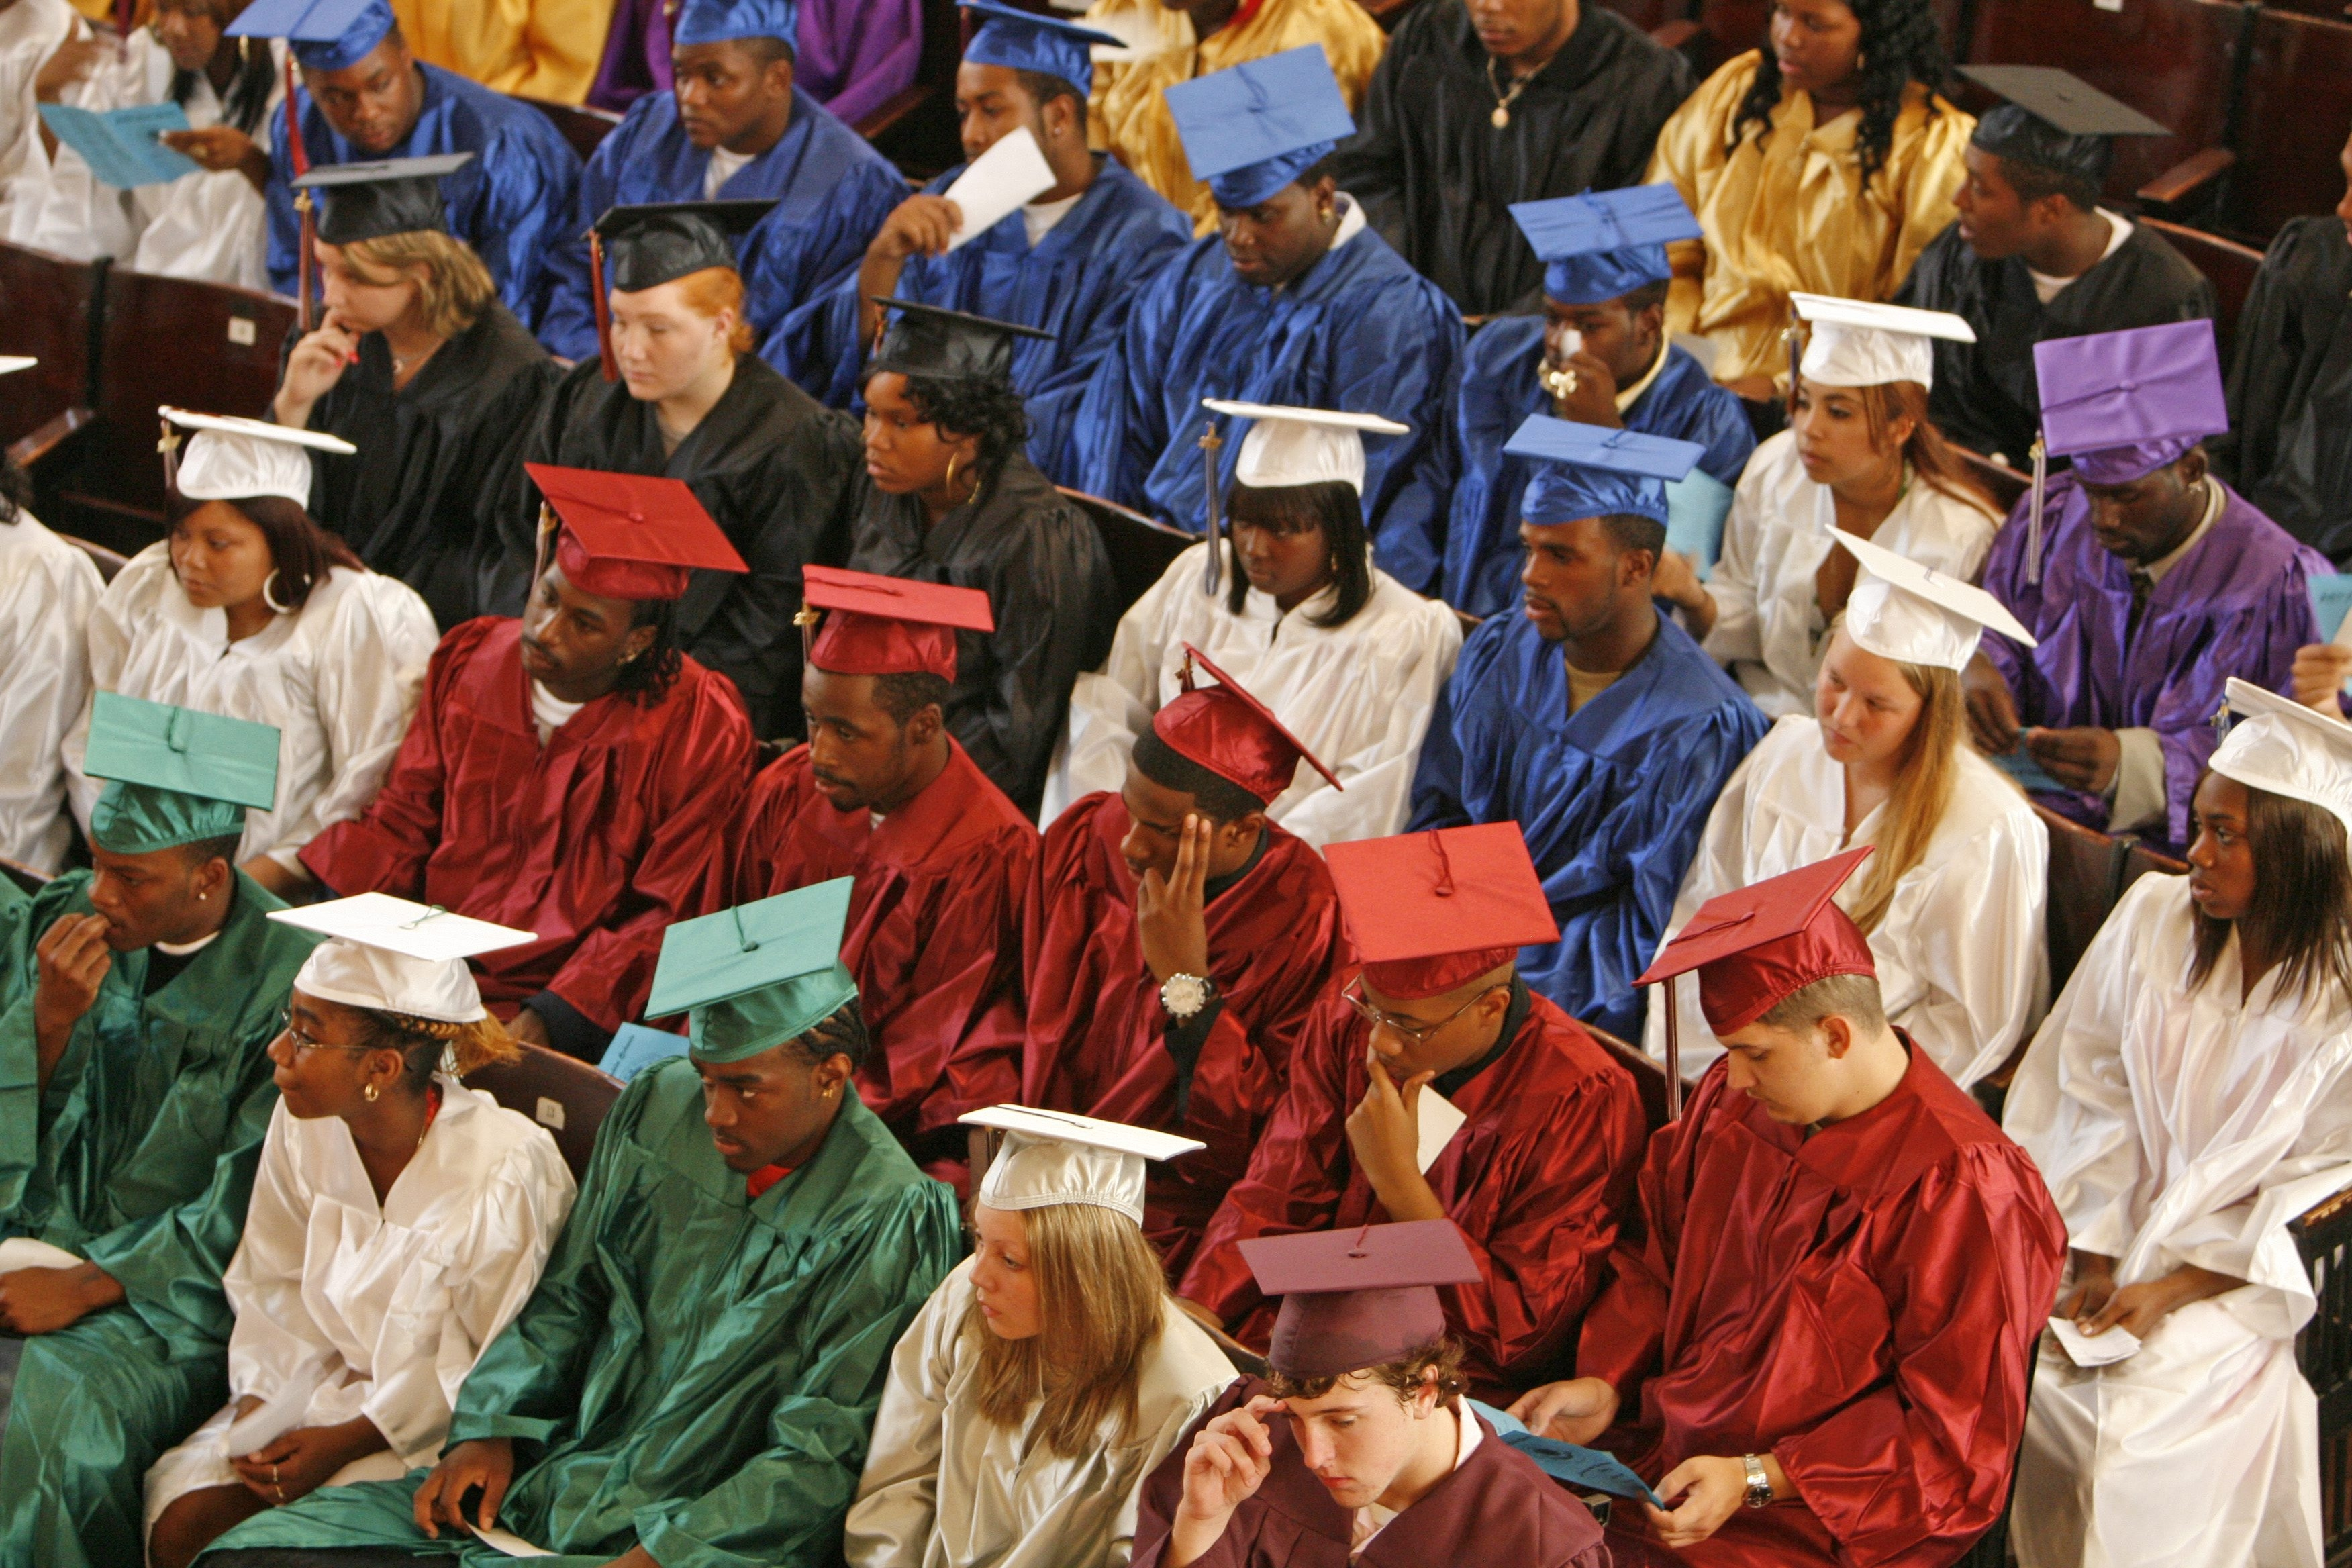 Graduation rates for Buffalo Public Schools rose 6 percent in 2013 from 2012.